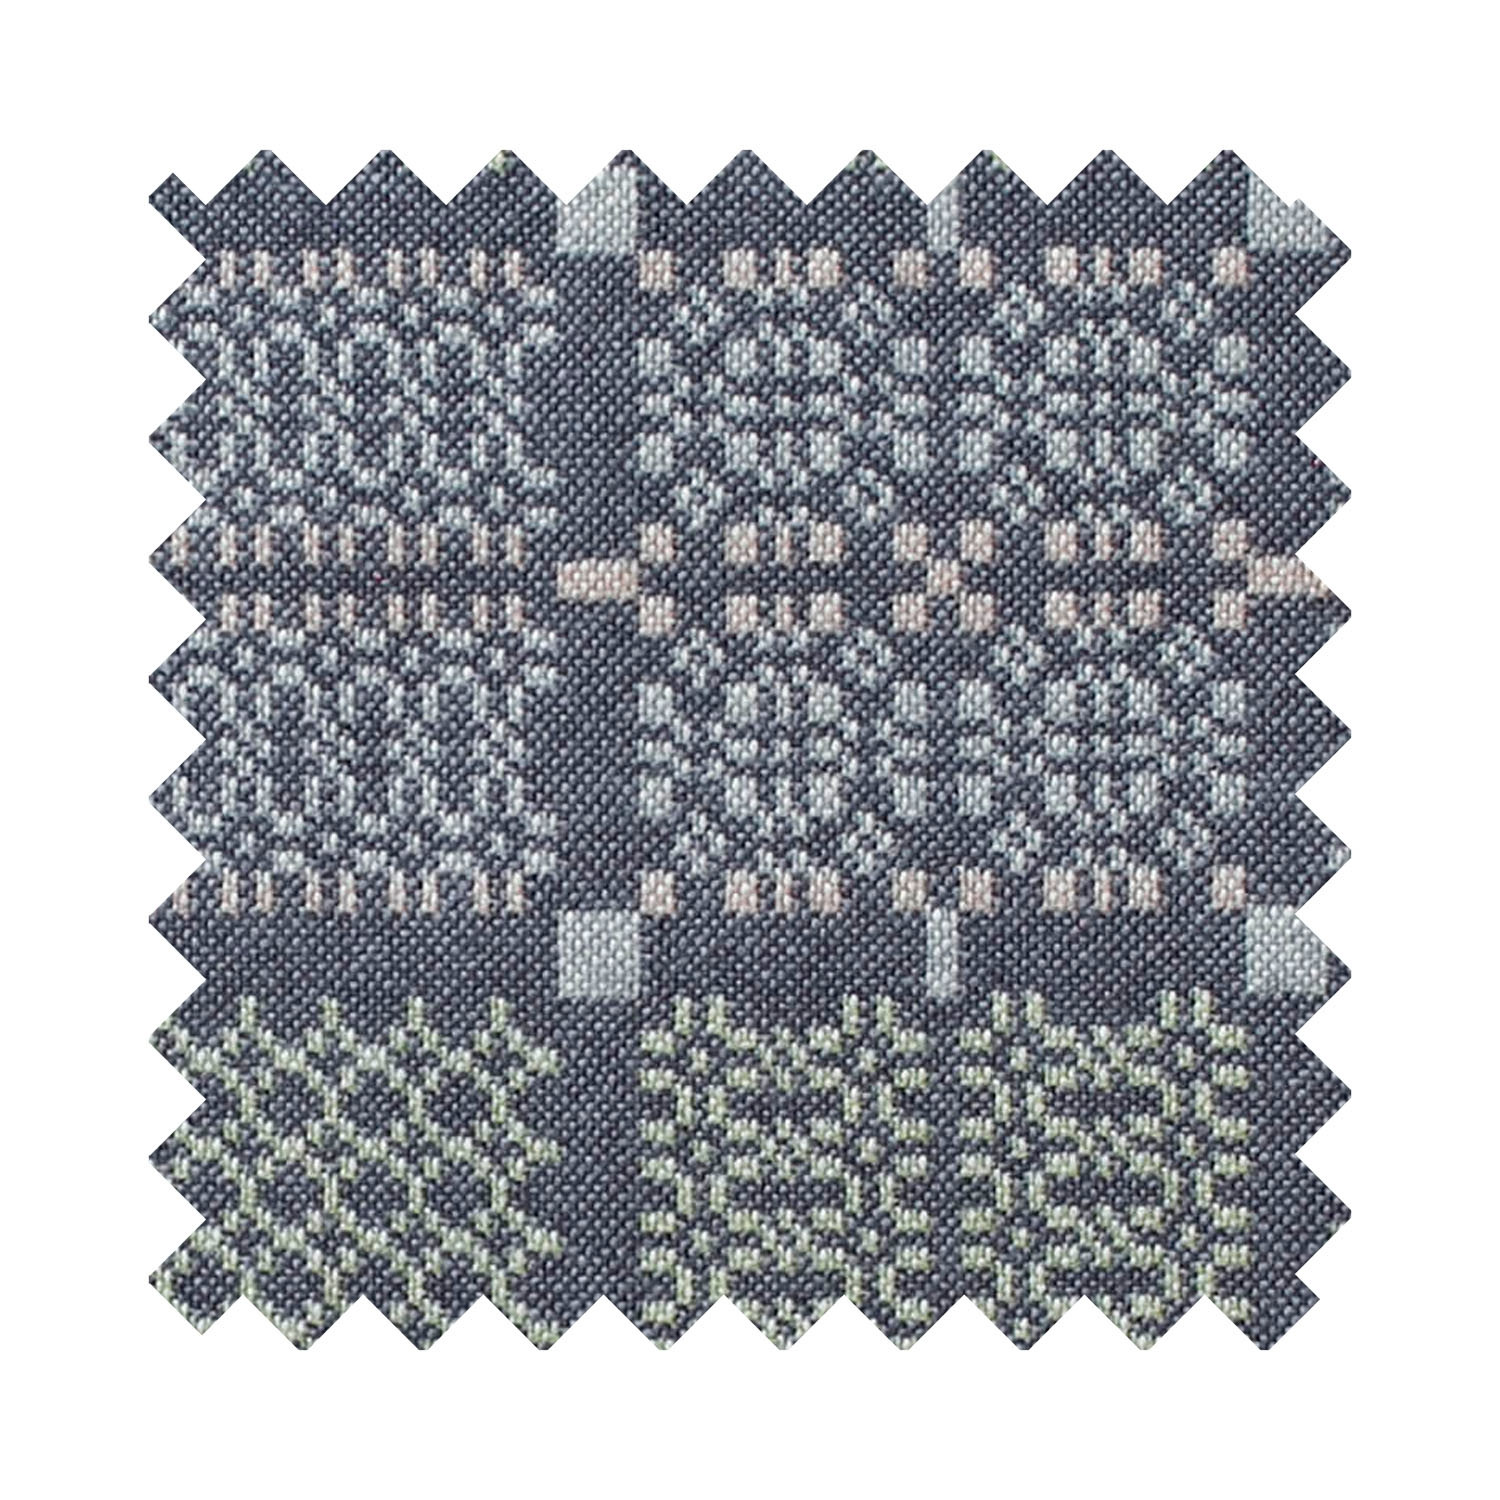 Knot Garden shale upholstery sample swatch